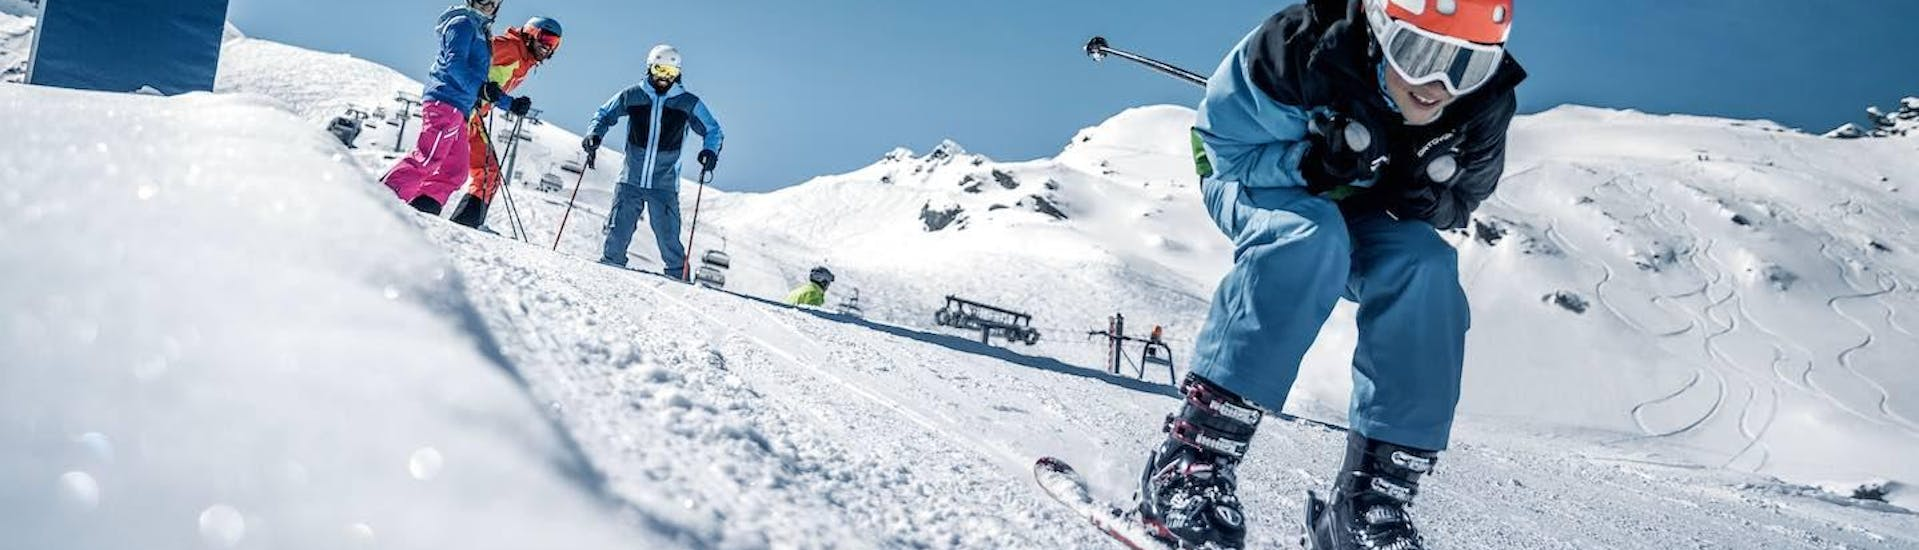 Teen Ski Lessons (12-15 y.) for All Levels with Snowsports Company Zell am See - Hero image